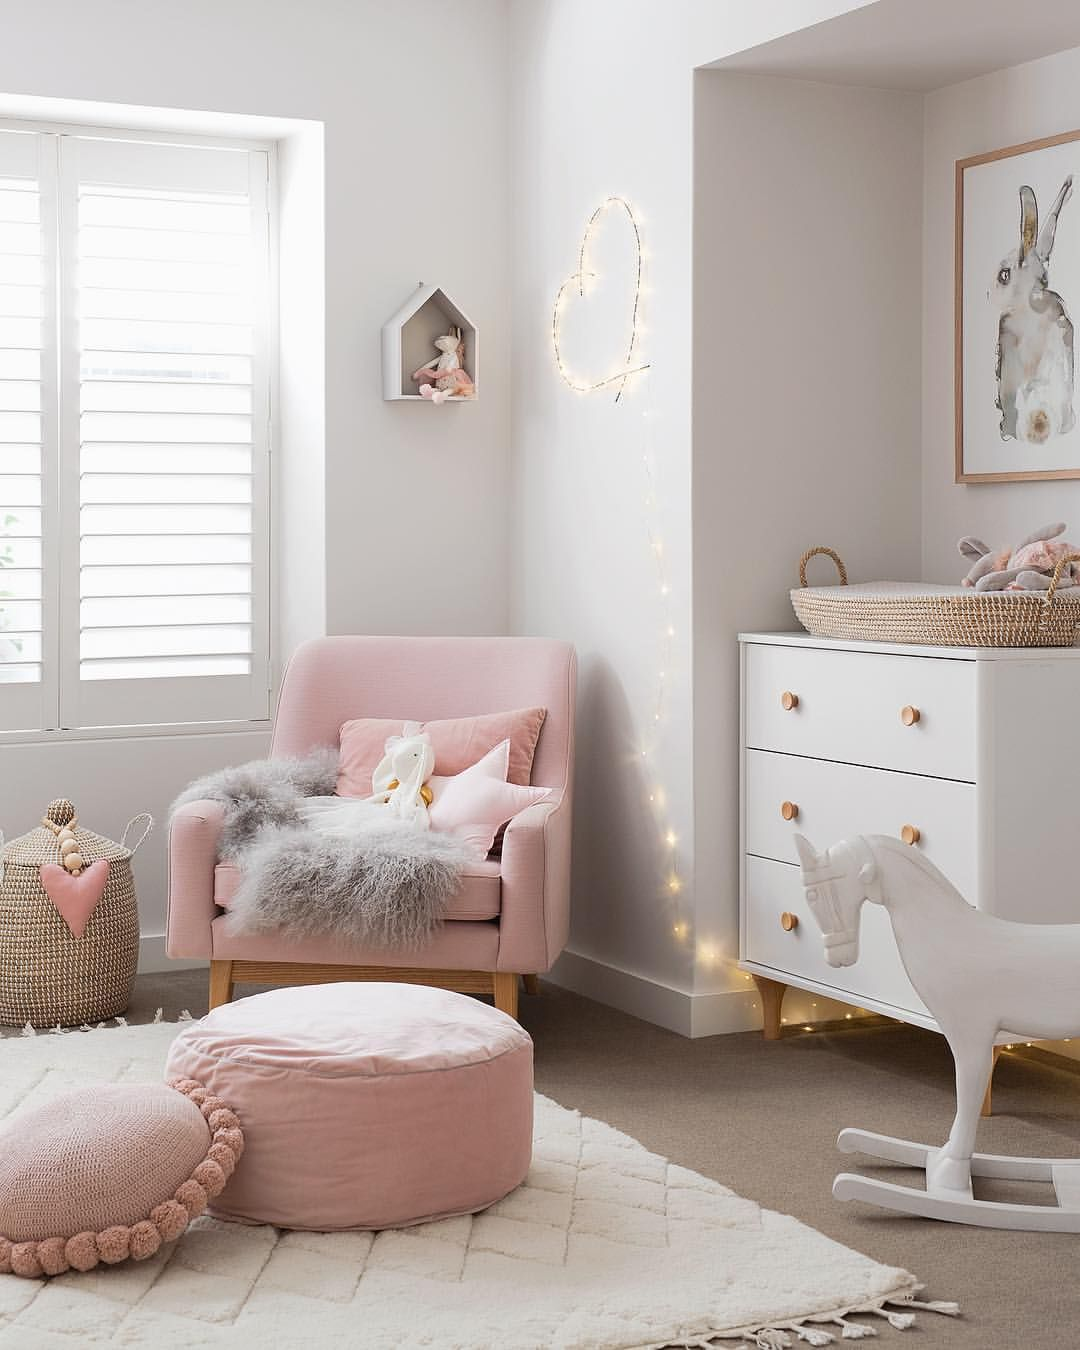 Mia Baby Bedroom Furniture: Mia's Nursery Is Now On The Blog With Lots Of Pink Inspo